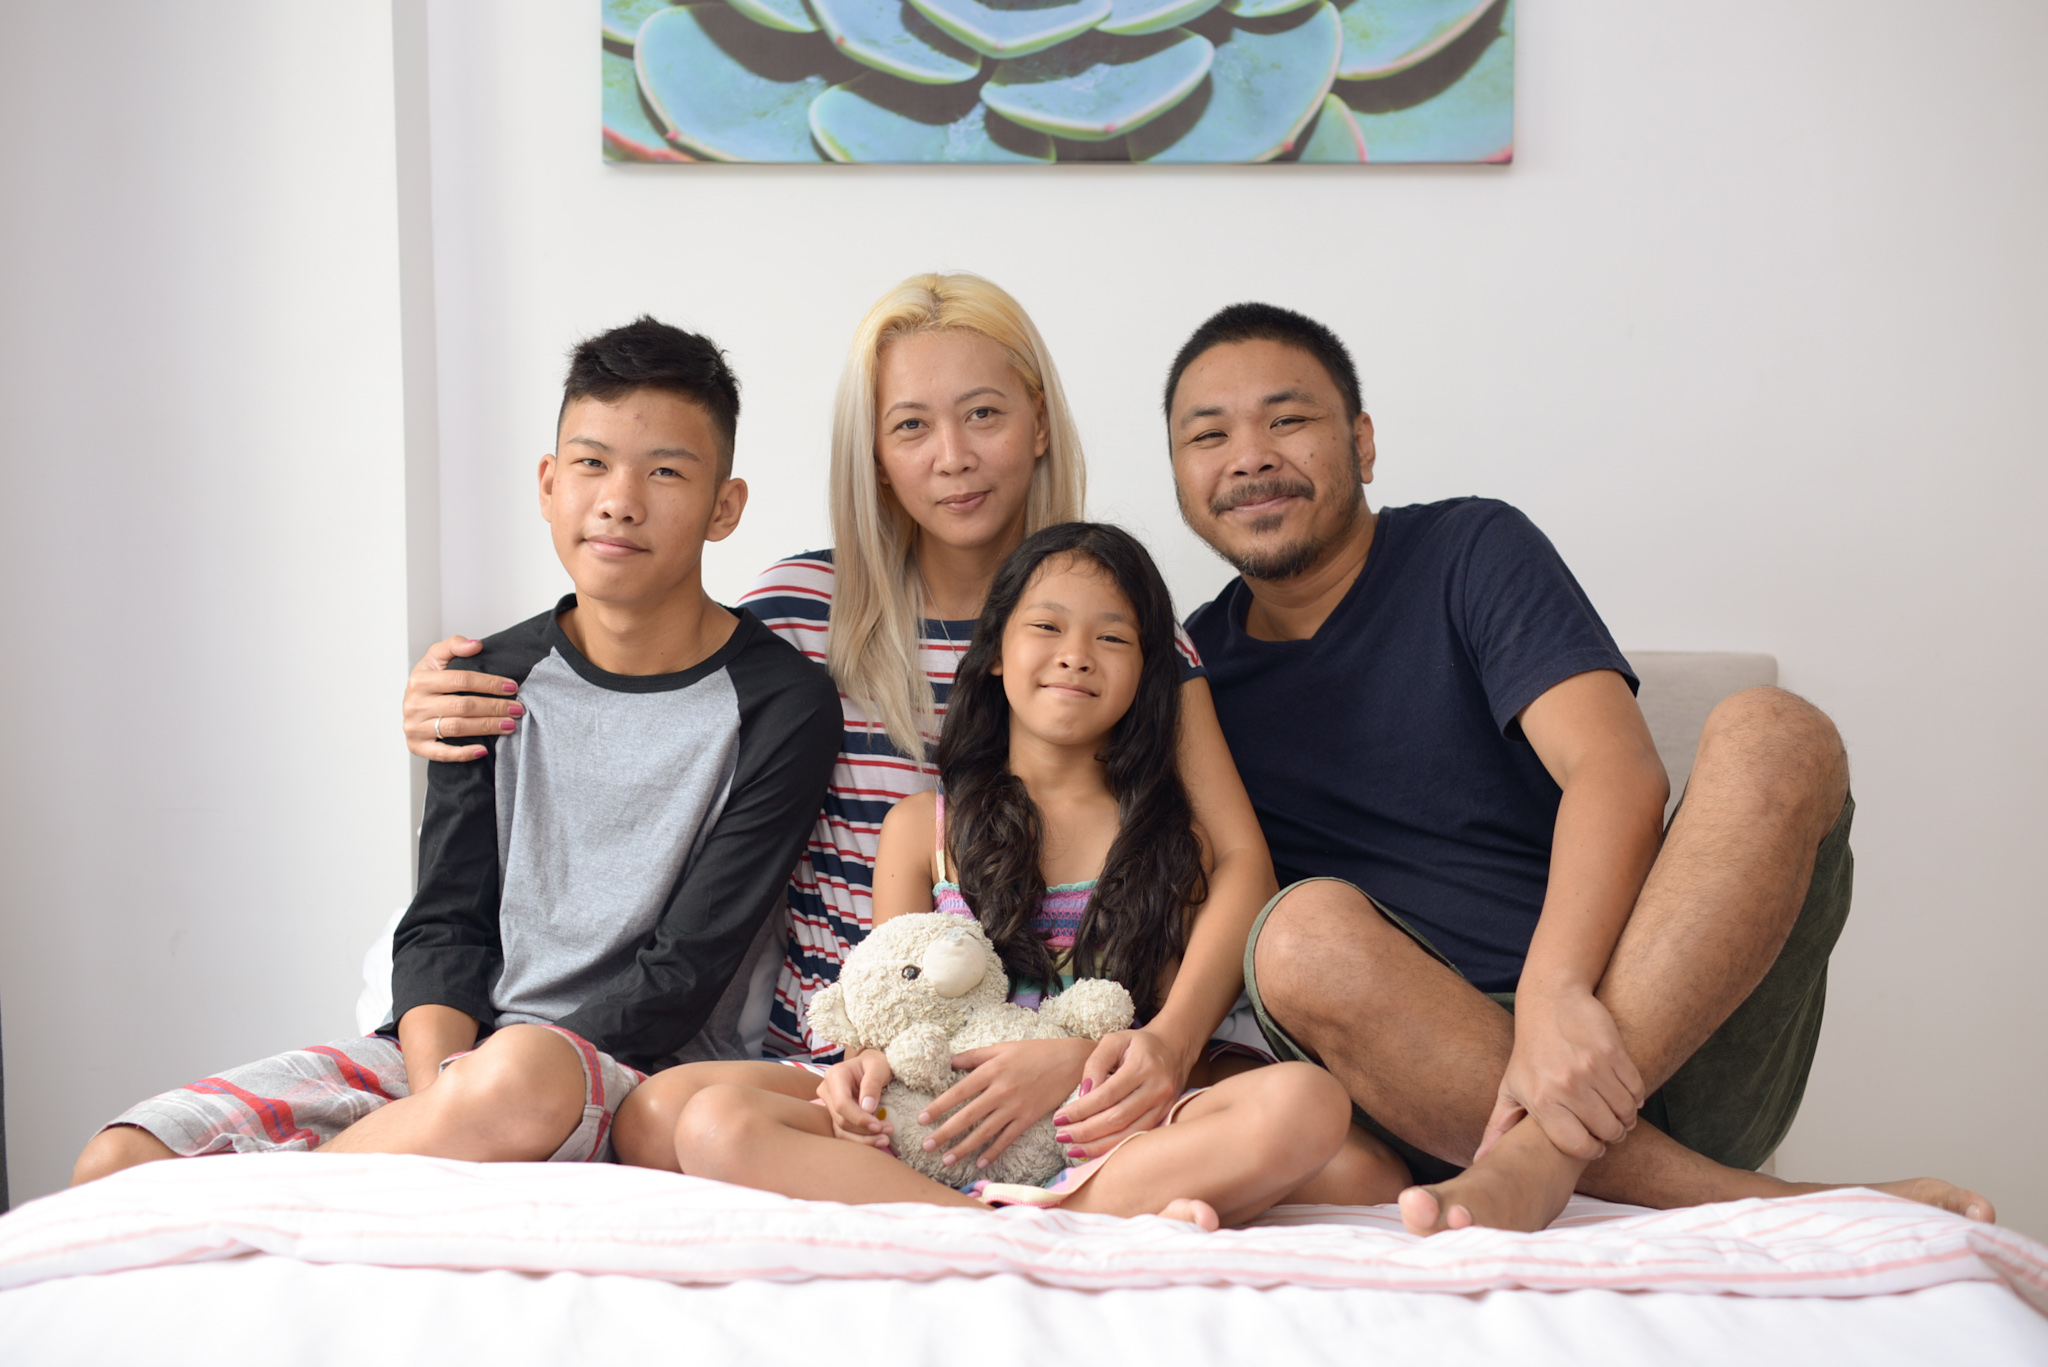 More Worry-Free Days with Joy - The V Family